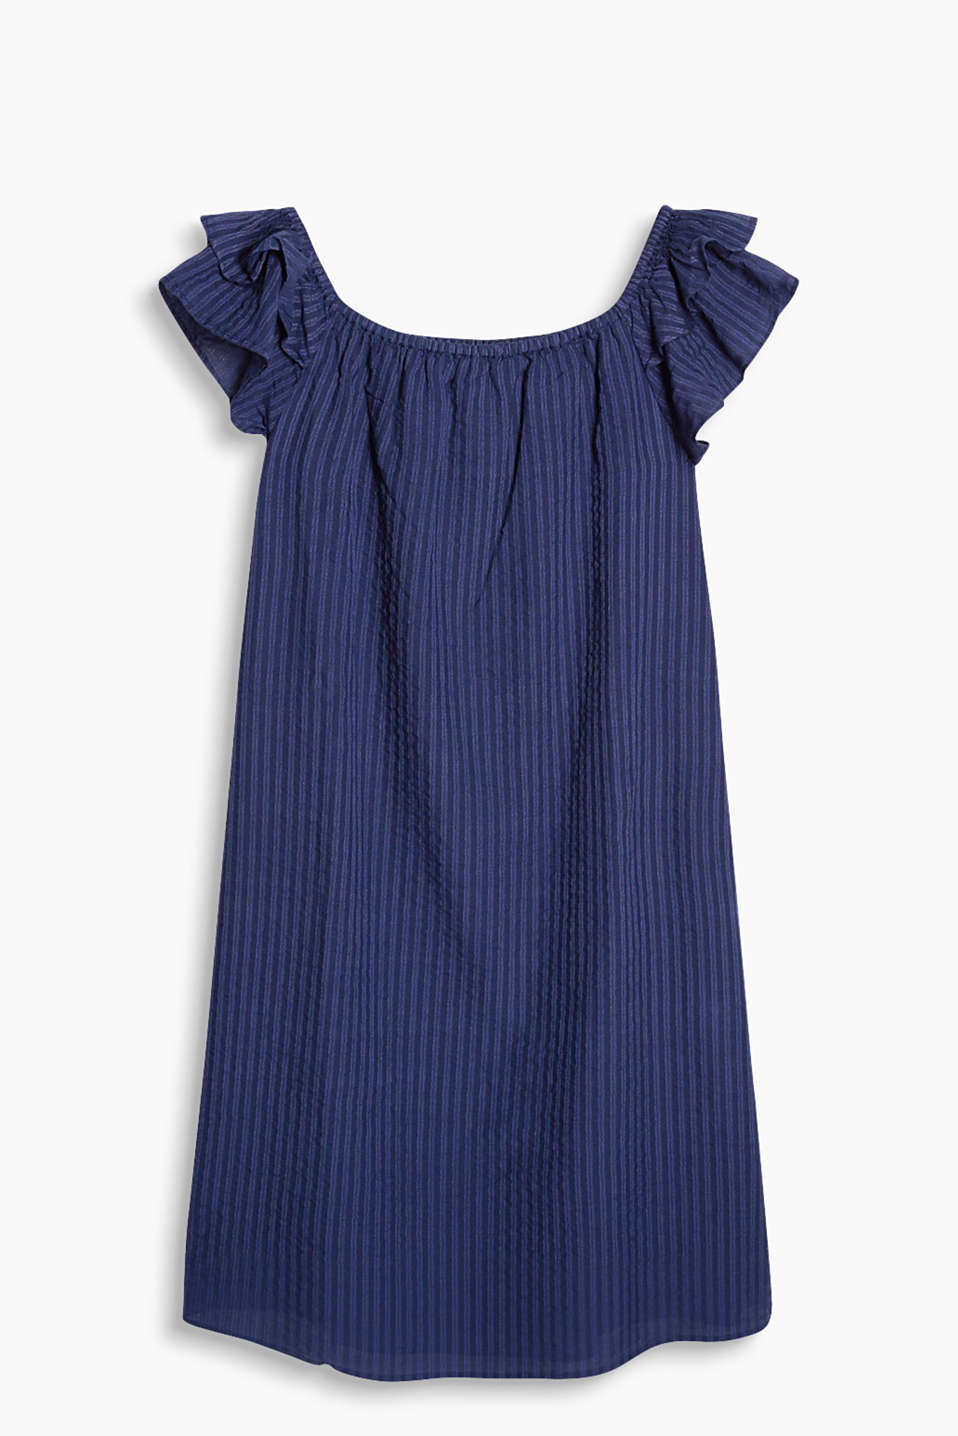 Off-the-shoulder dress in airy voile with flounce sleeves